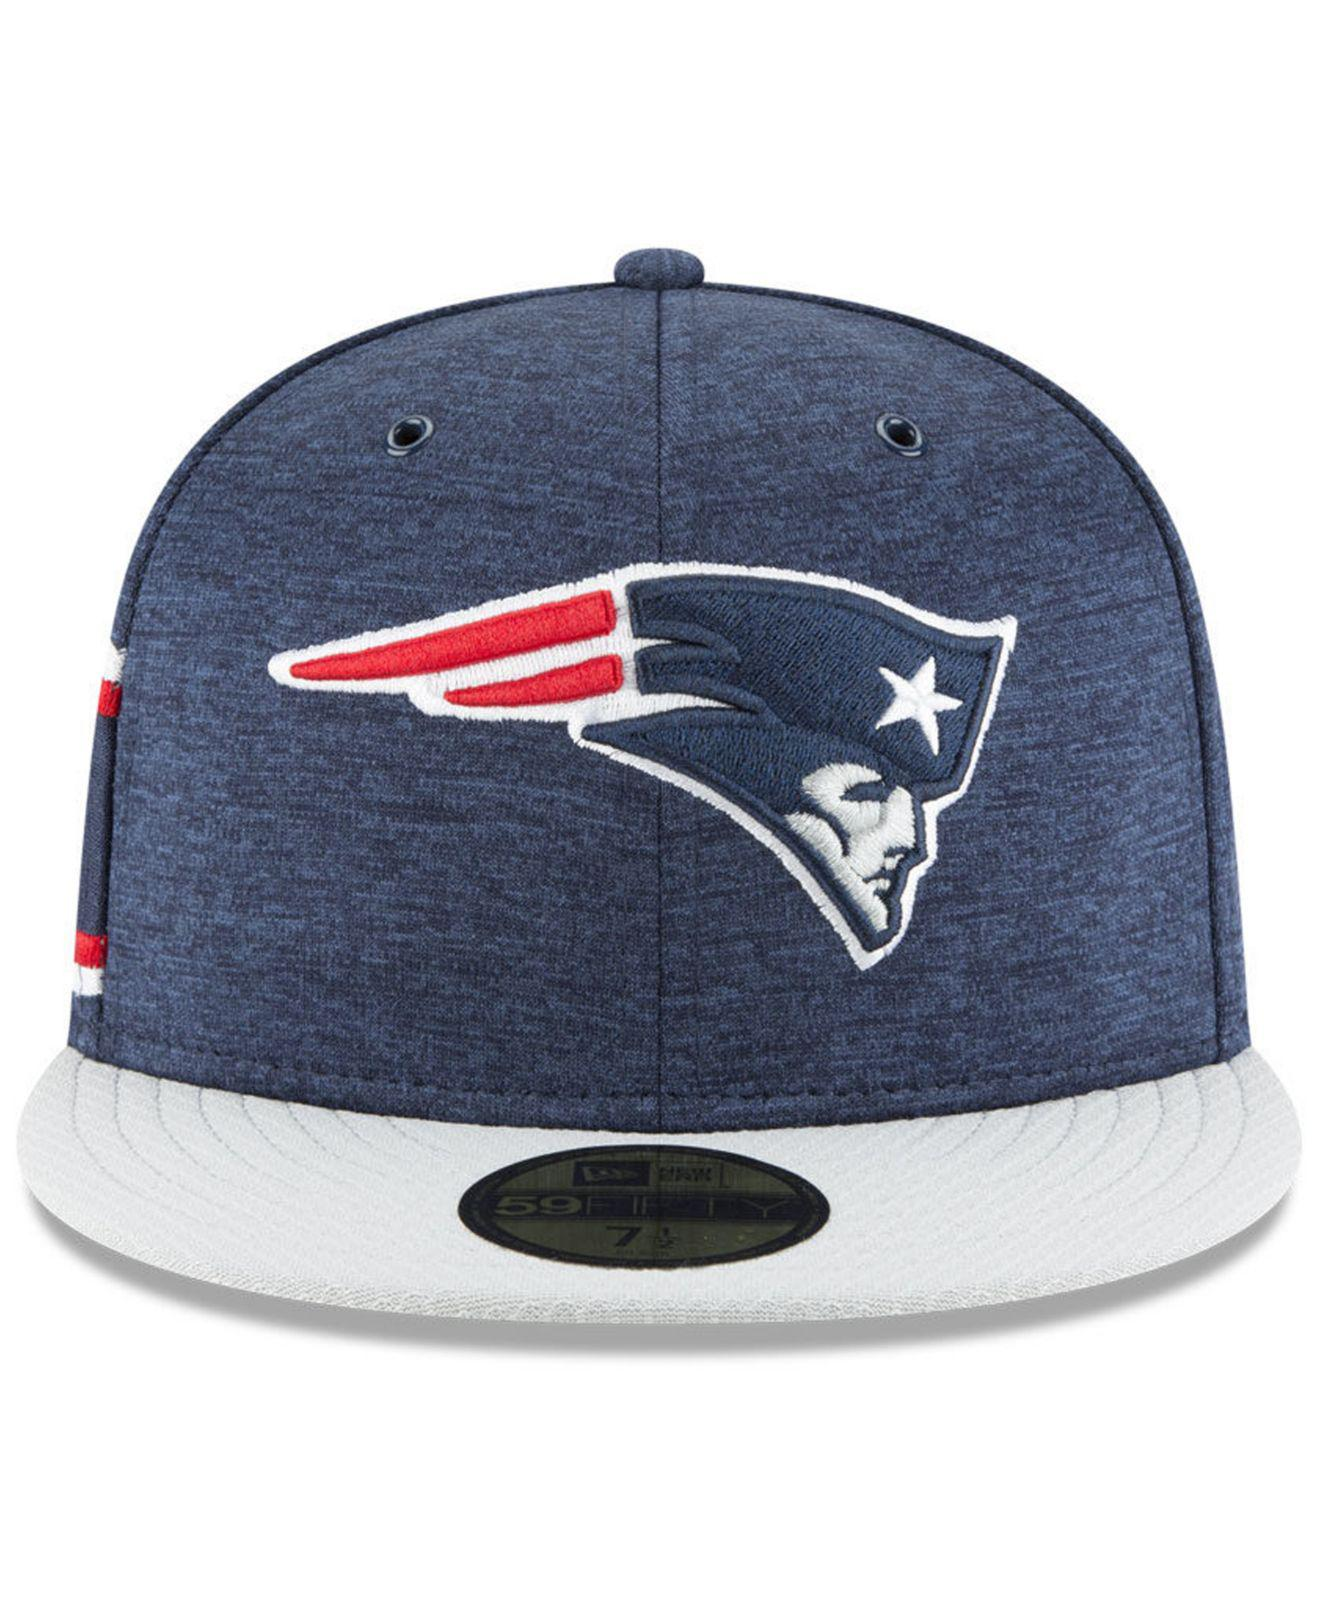 Lyst - KTZ New England Patriots On Field Sideline Home 59fifty Fitted Cap  in Blue for Men 3b11eee60